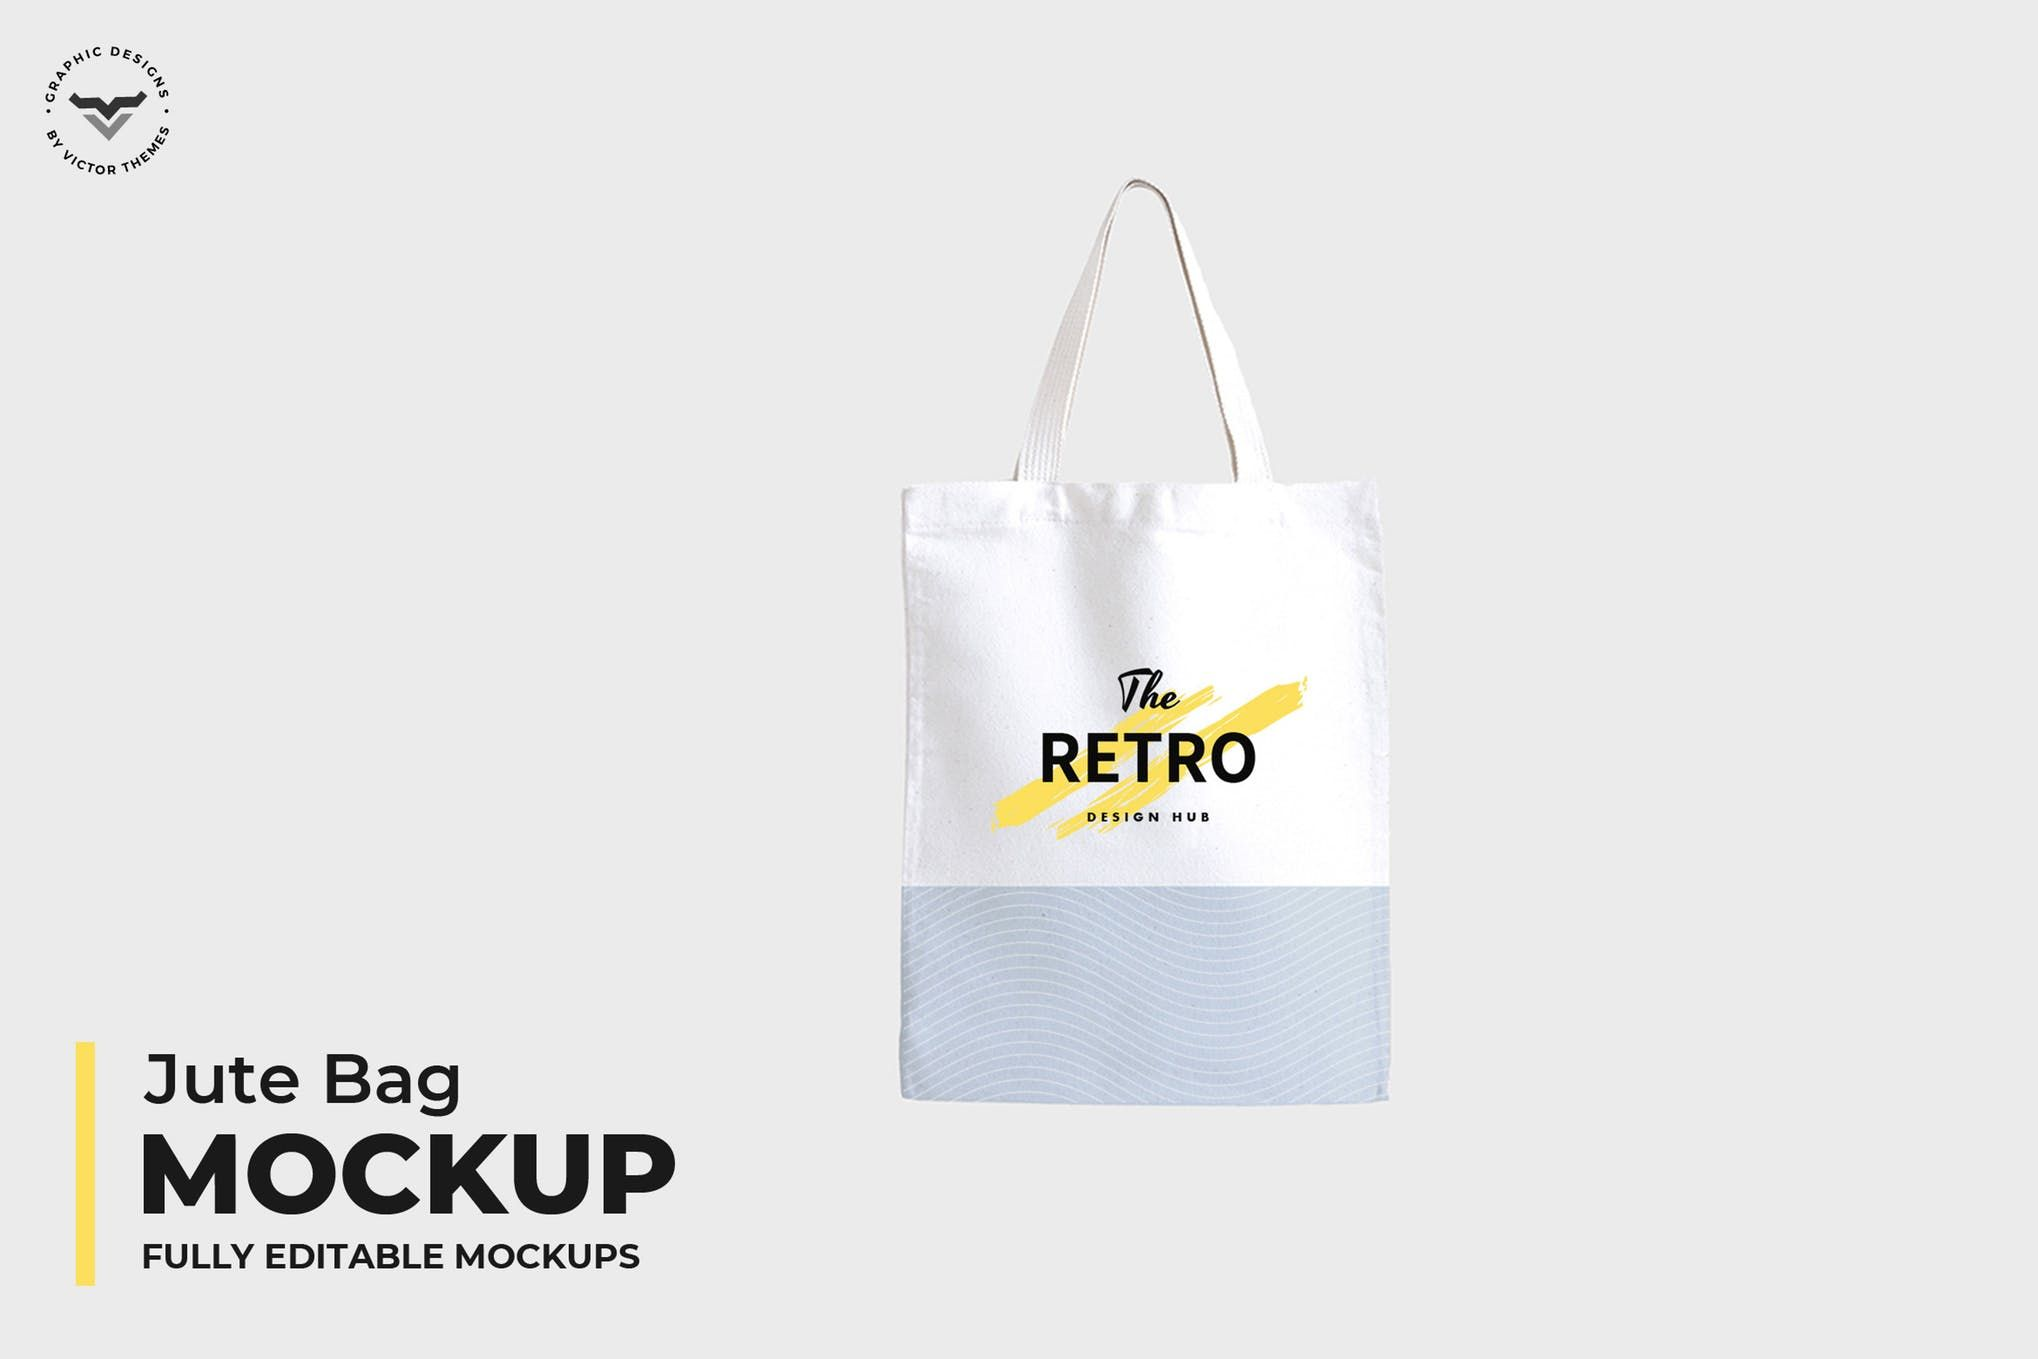 Download Shopping Jute Bag Mockups For Your Website And Graphic Presentations That Require Adobe Photoshop Cs5 Features Jute Bag Mockupsea Bag Mockup Jute Bags Eco Bag